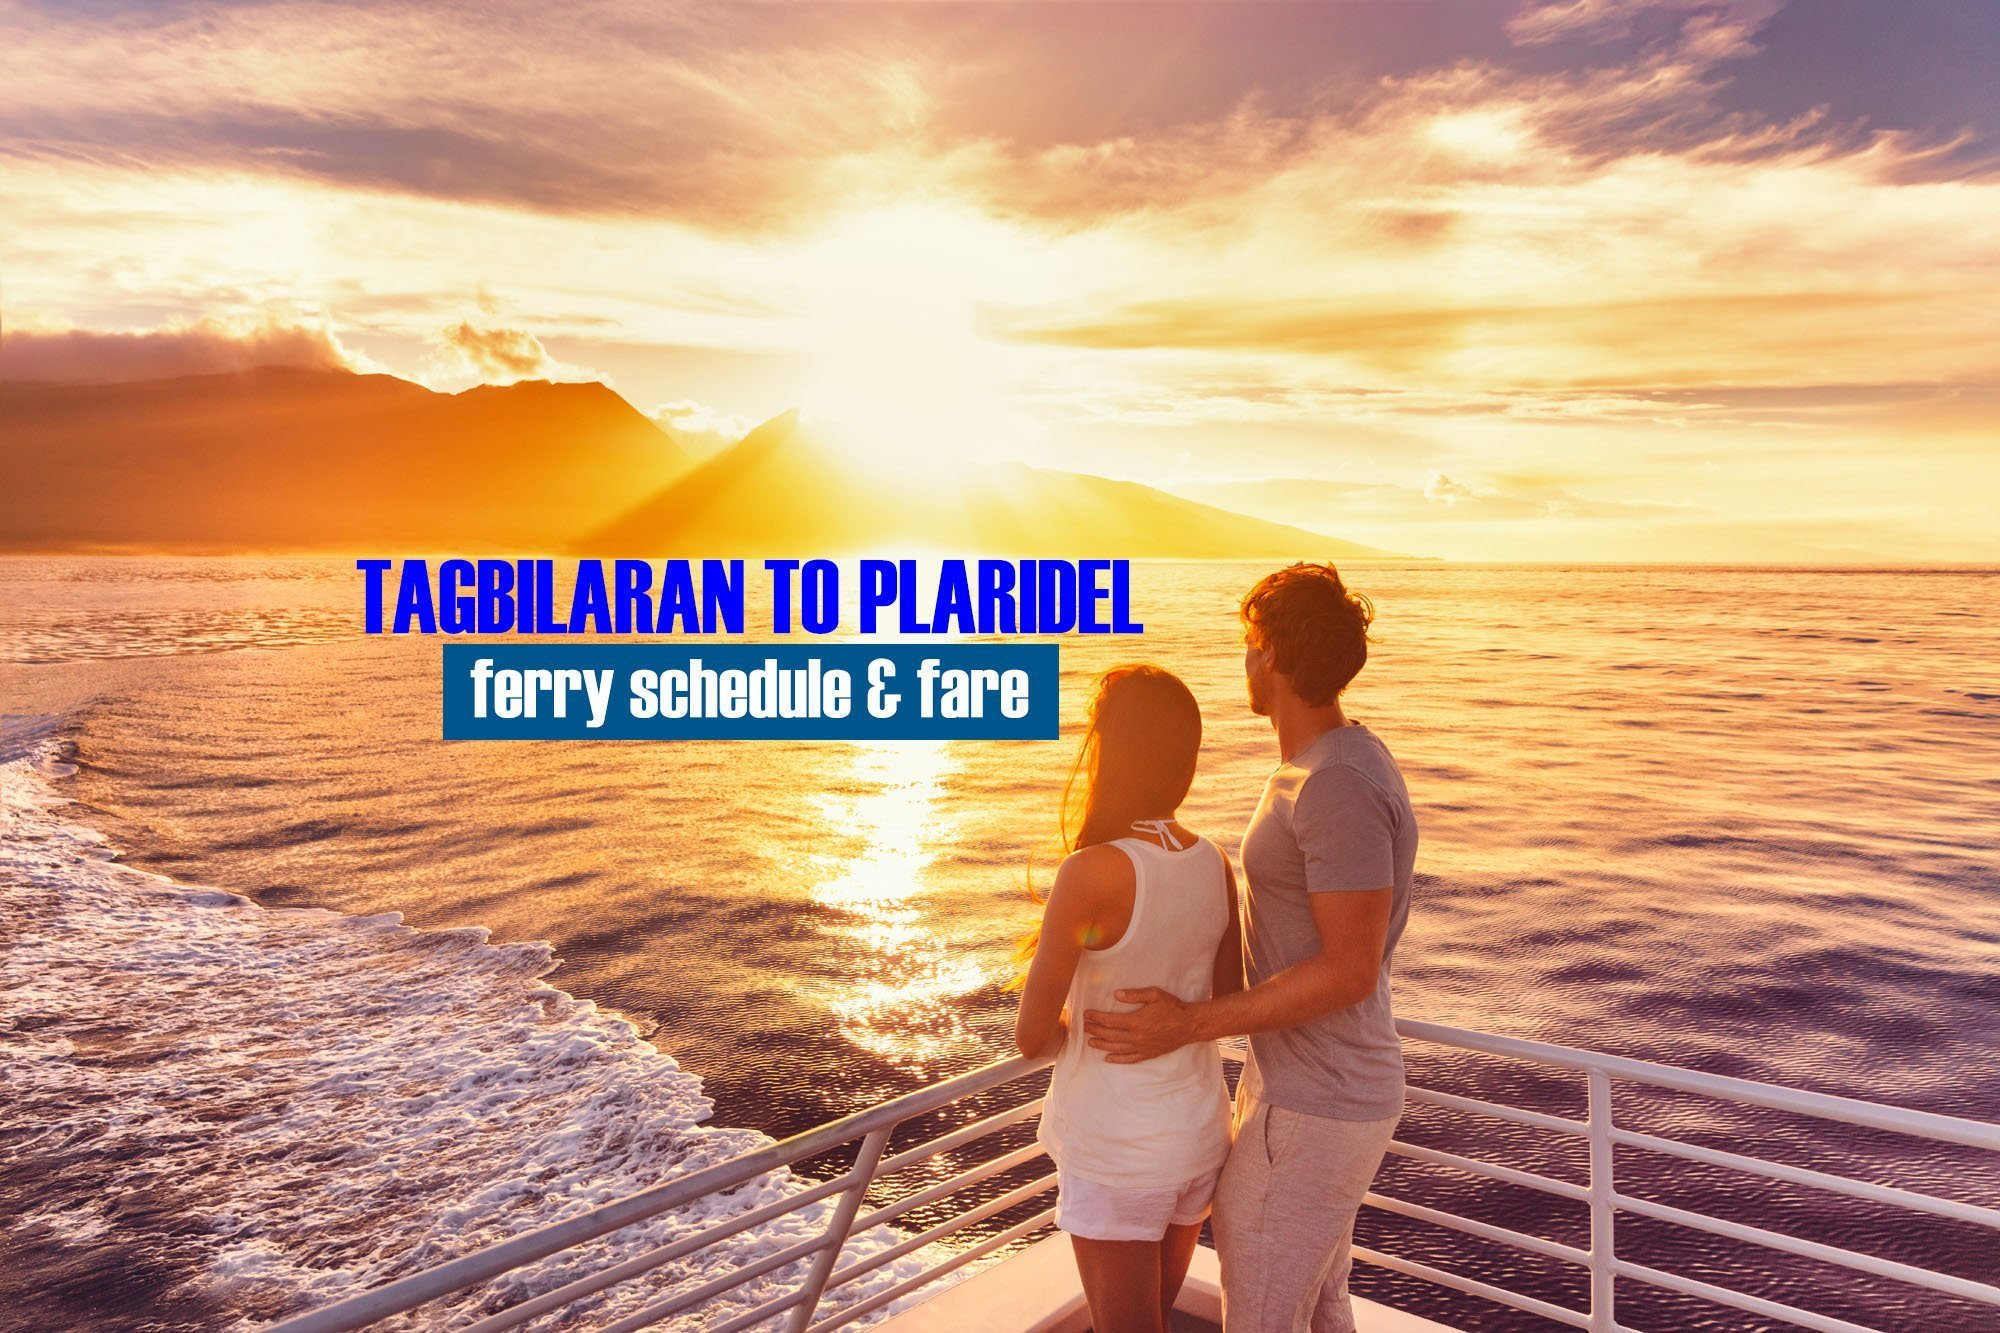 Tagbilaran to Plaridel: 2020 Ferry Schedule and Fare Rates